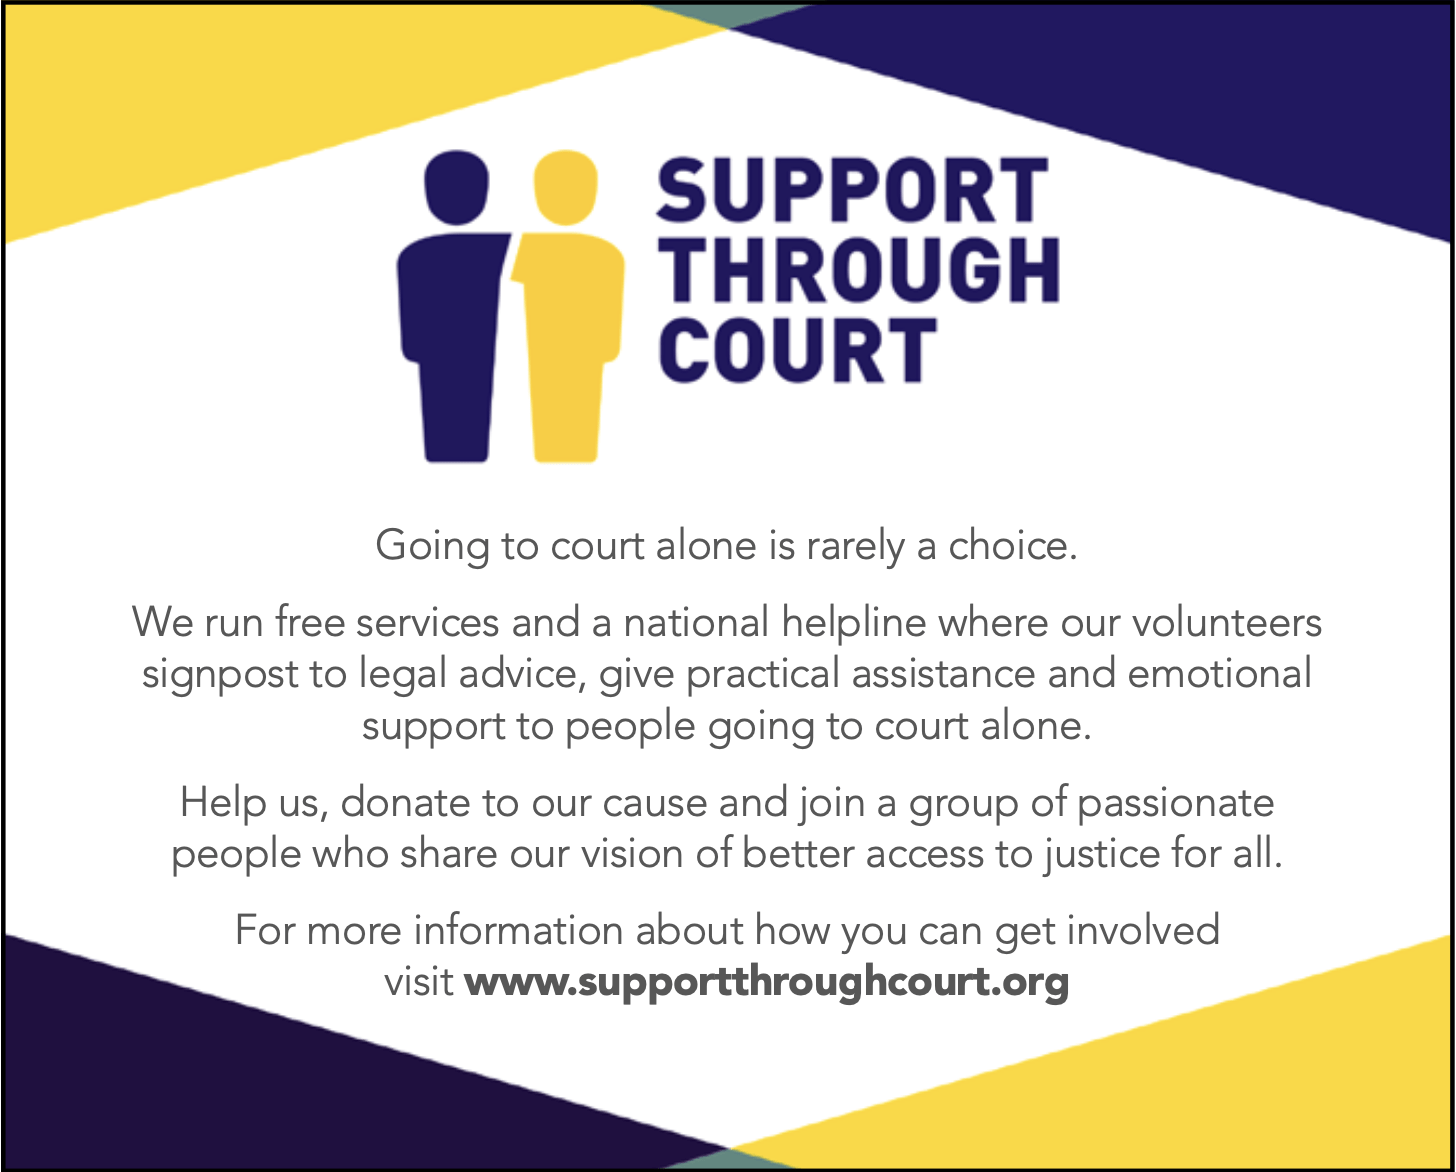 Support through court